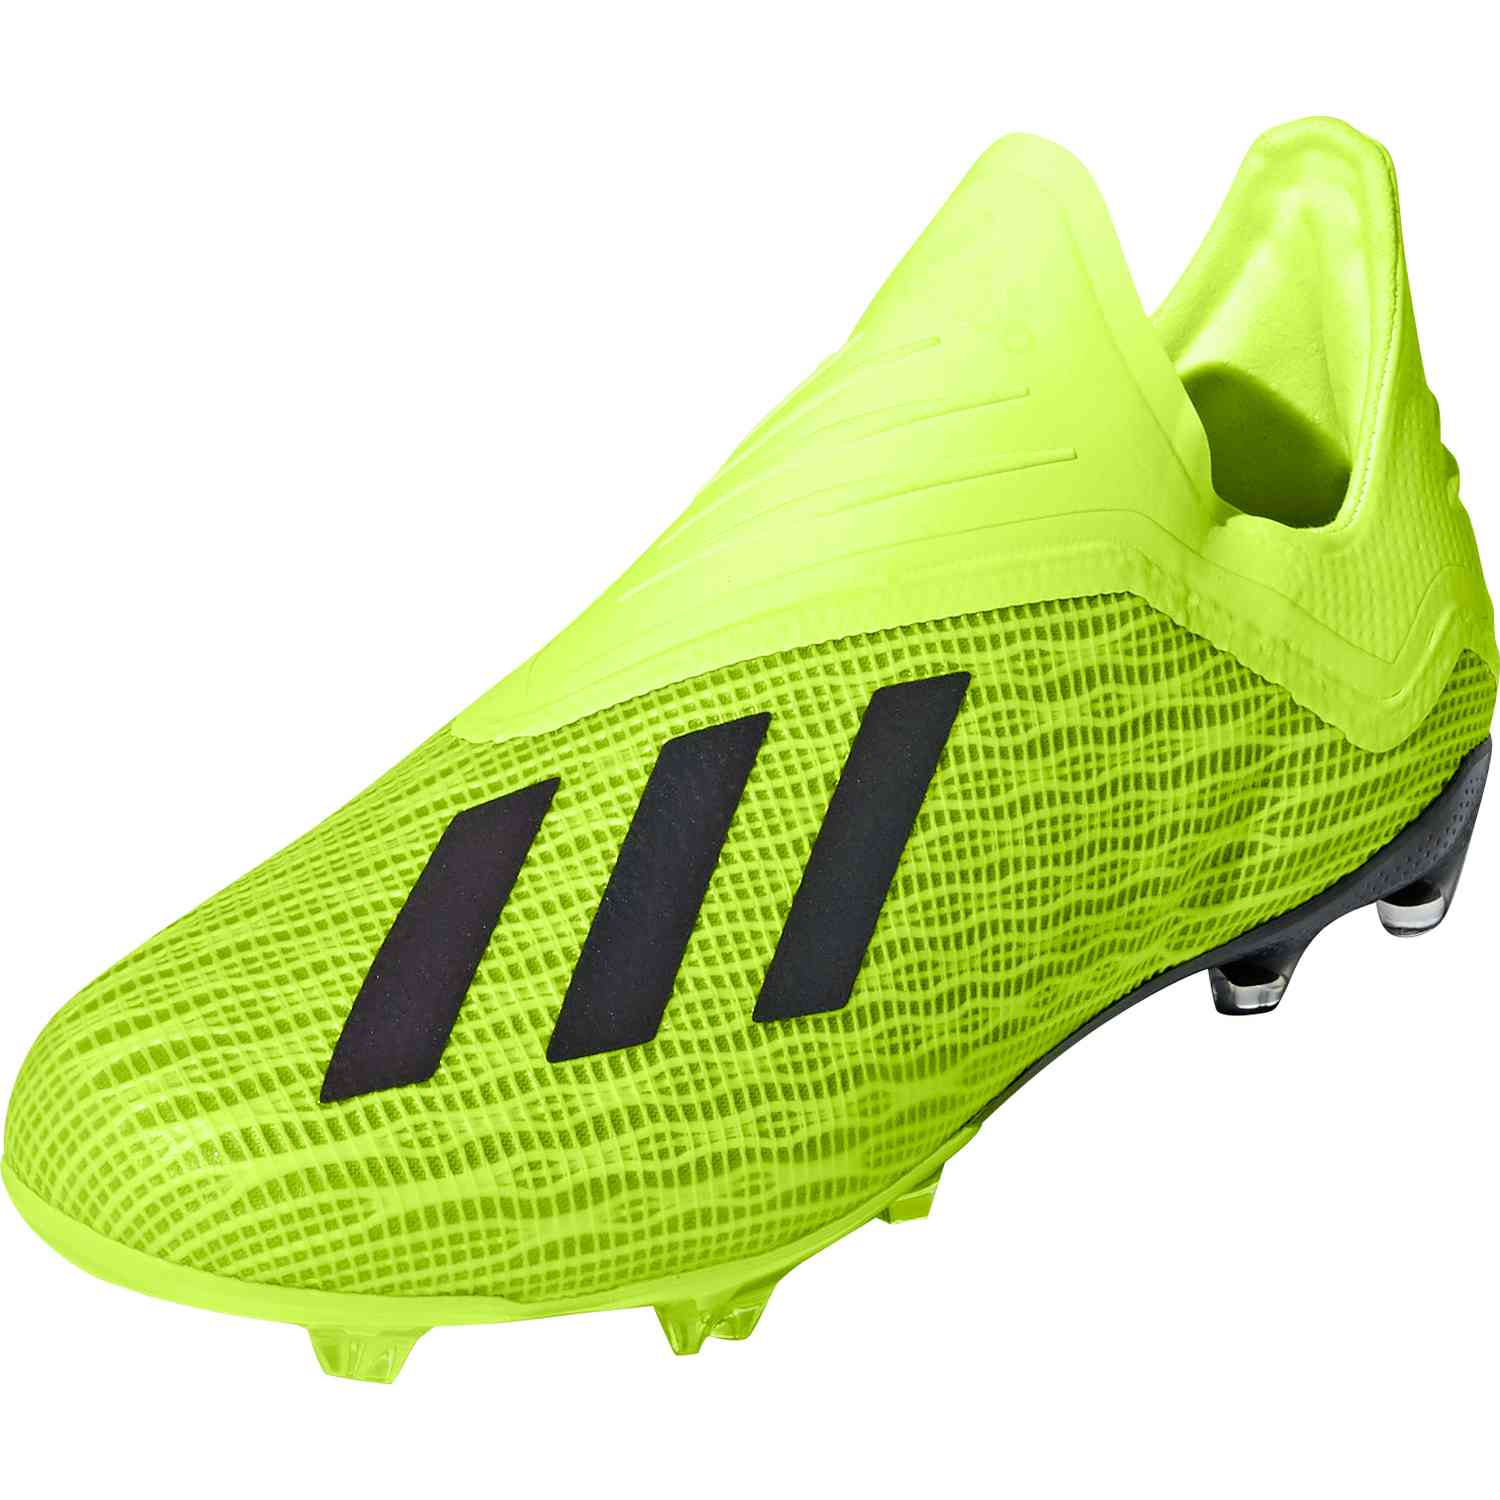 Levántate María un poco  adidas X 18+ FG - Youth -Team Mode - Cleatsxp